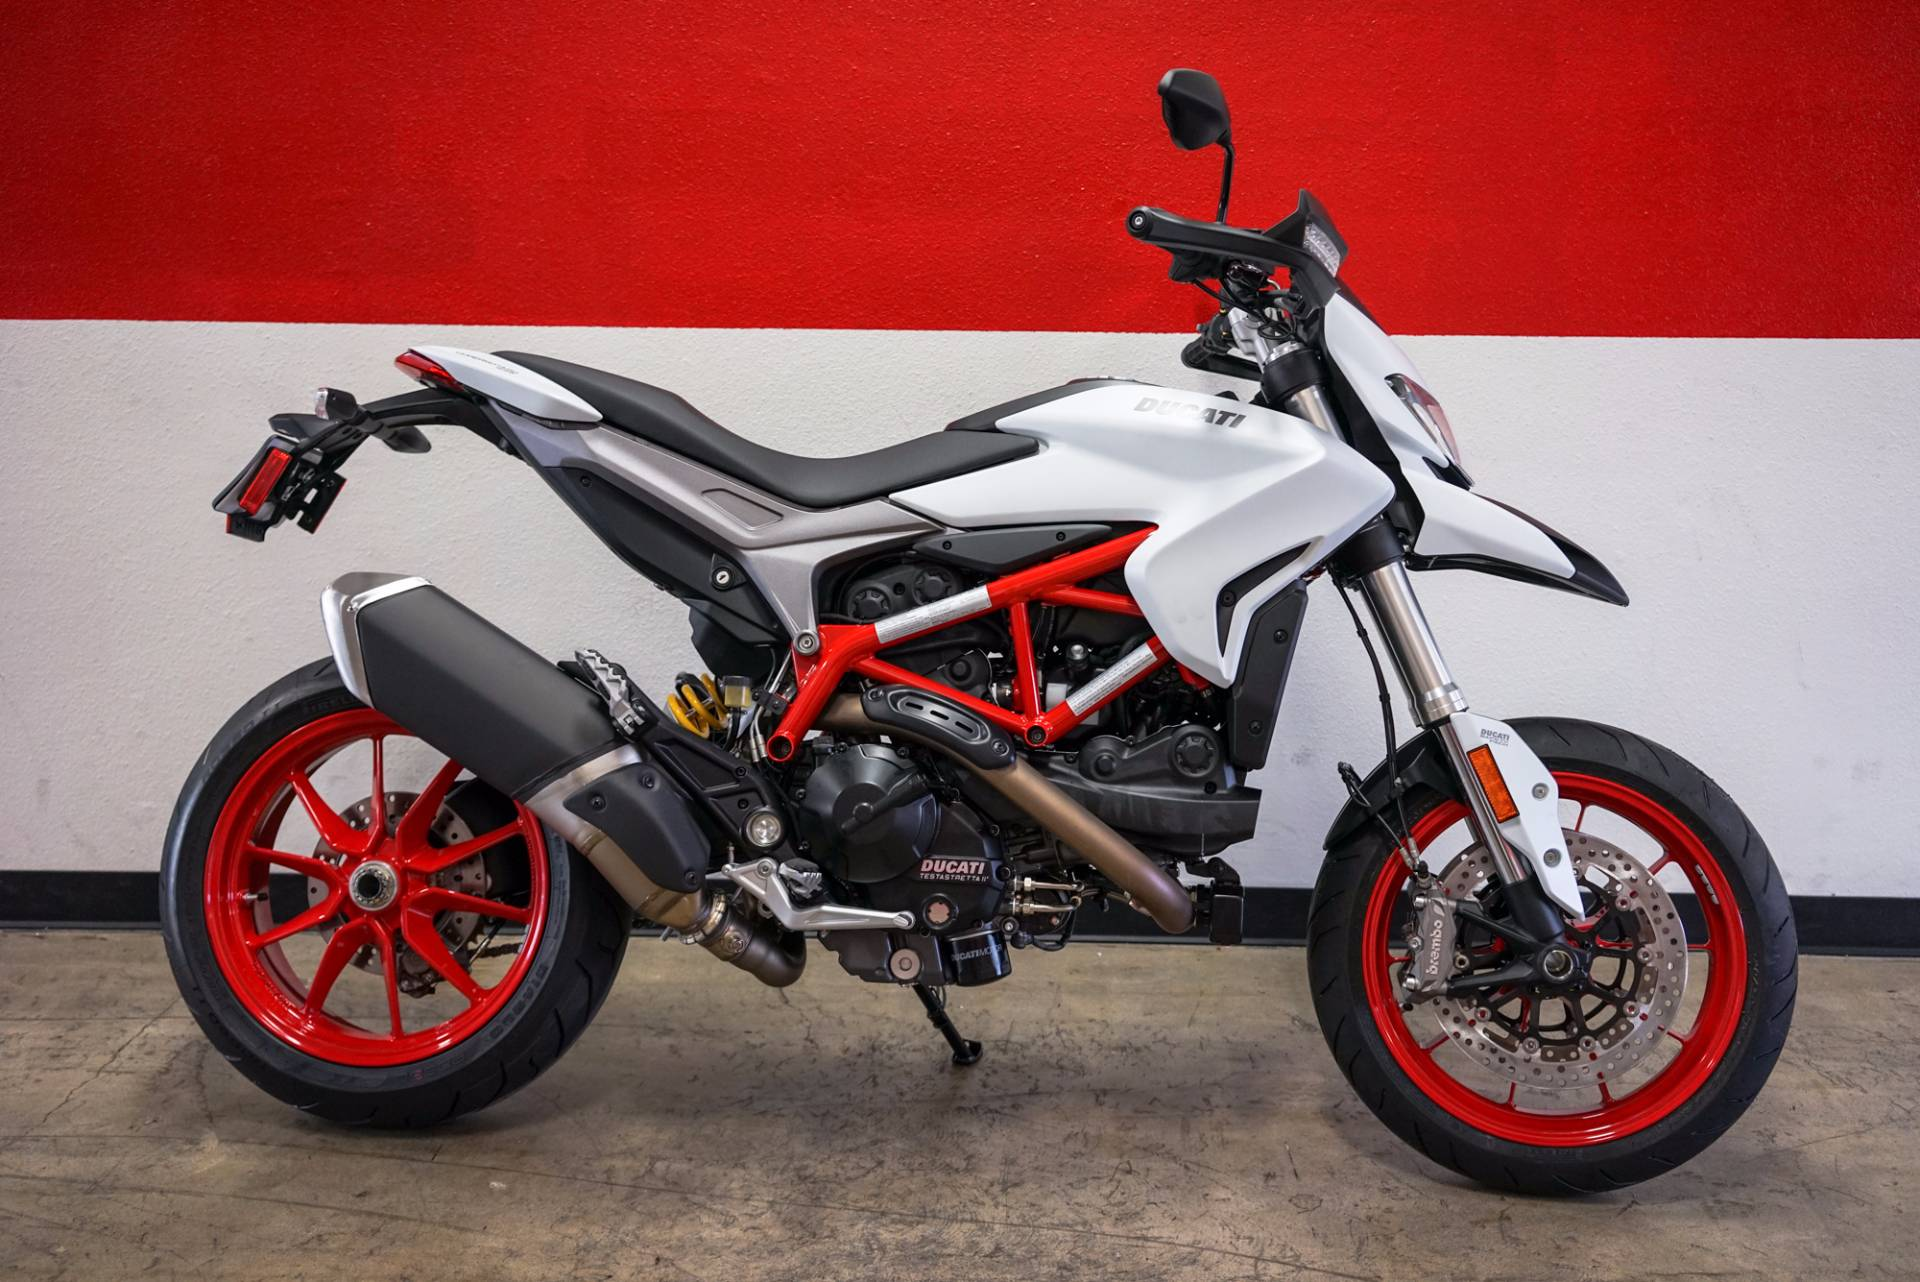 new 2018 ducati hypermotard 939 motorcycles in brea ca. Black Bedroom Furniture Sets. Home Design Ideas